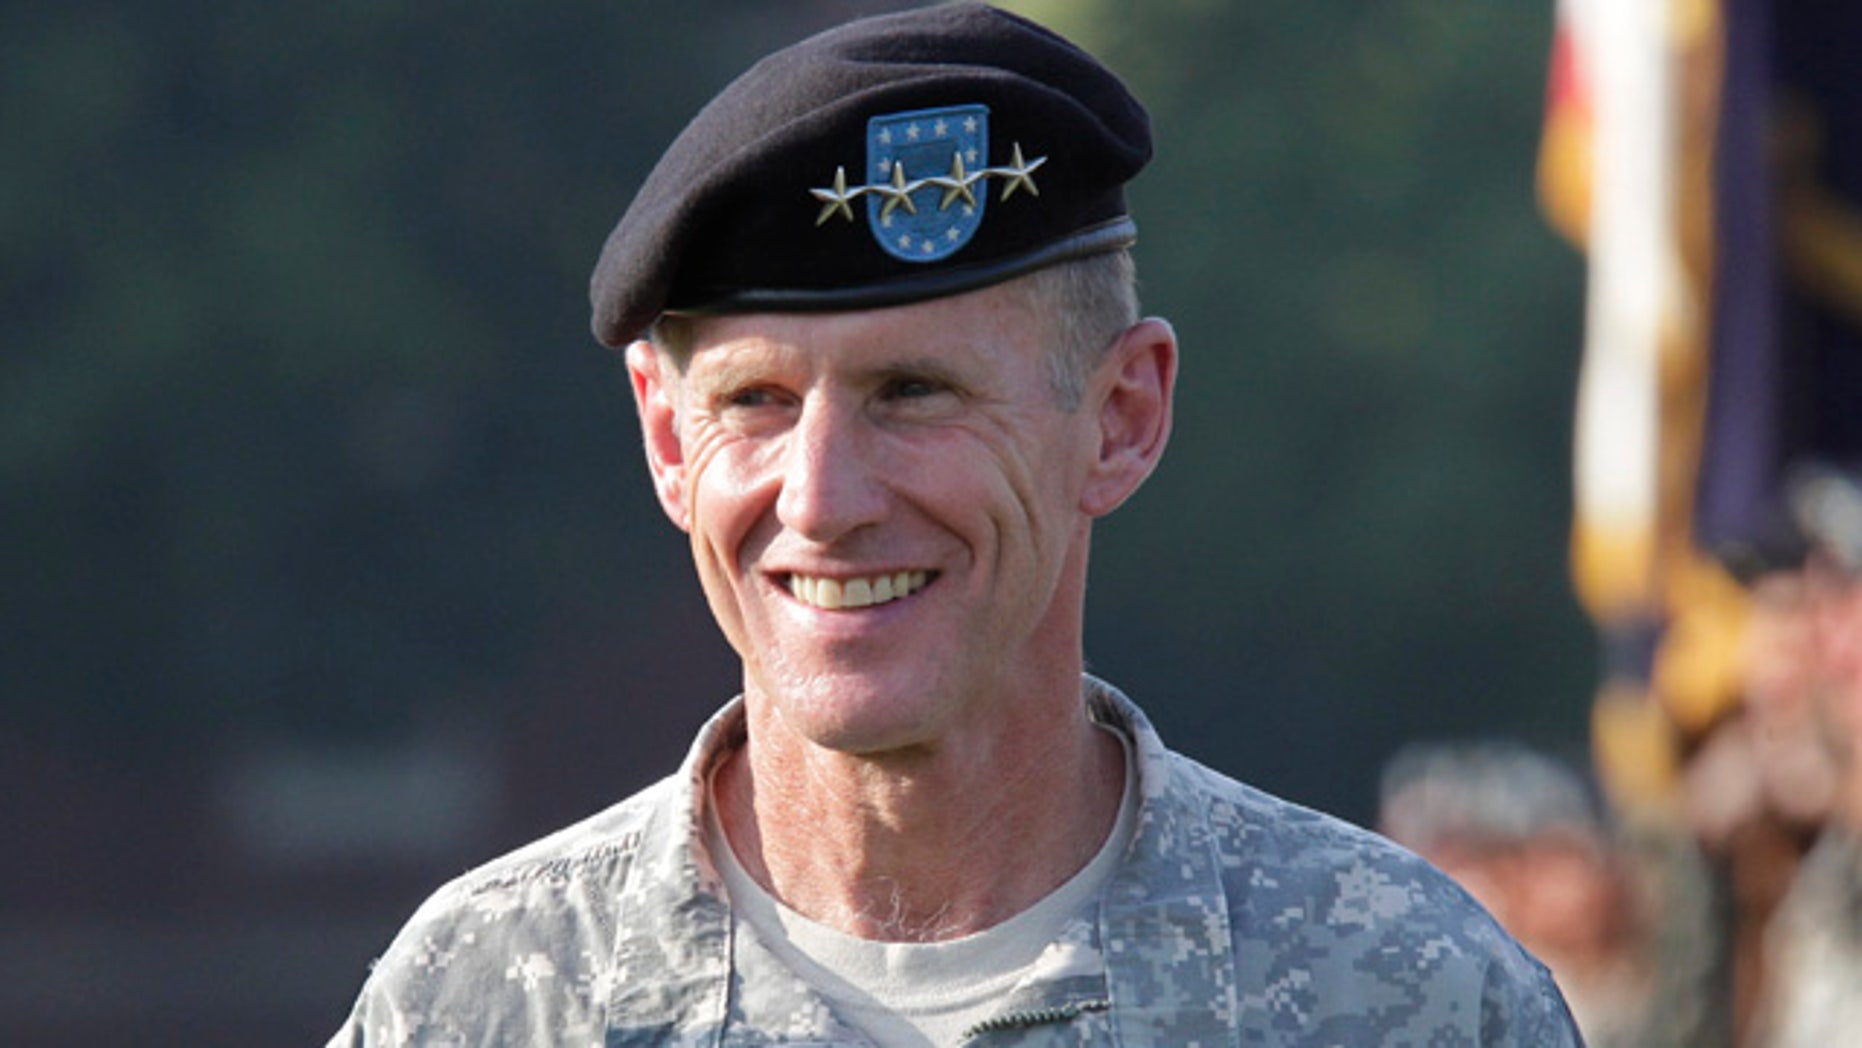 July 23, 2010: Gen. Stanley McChrystal reviews troops for the last time as he is honored at a retirement ceremony at Fort McNair in Washington.